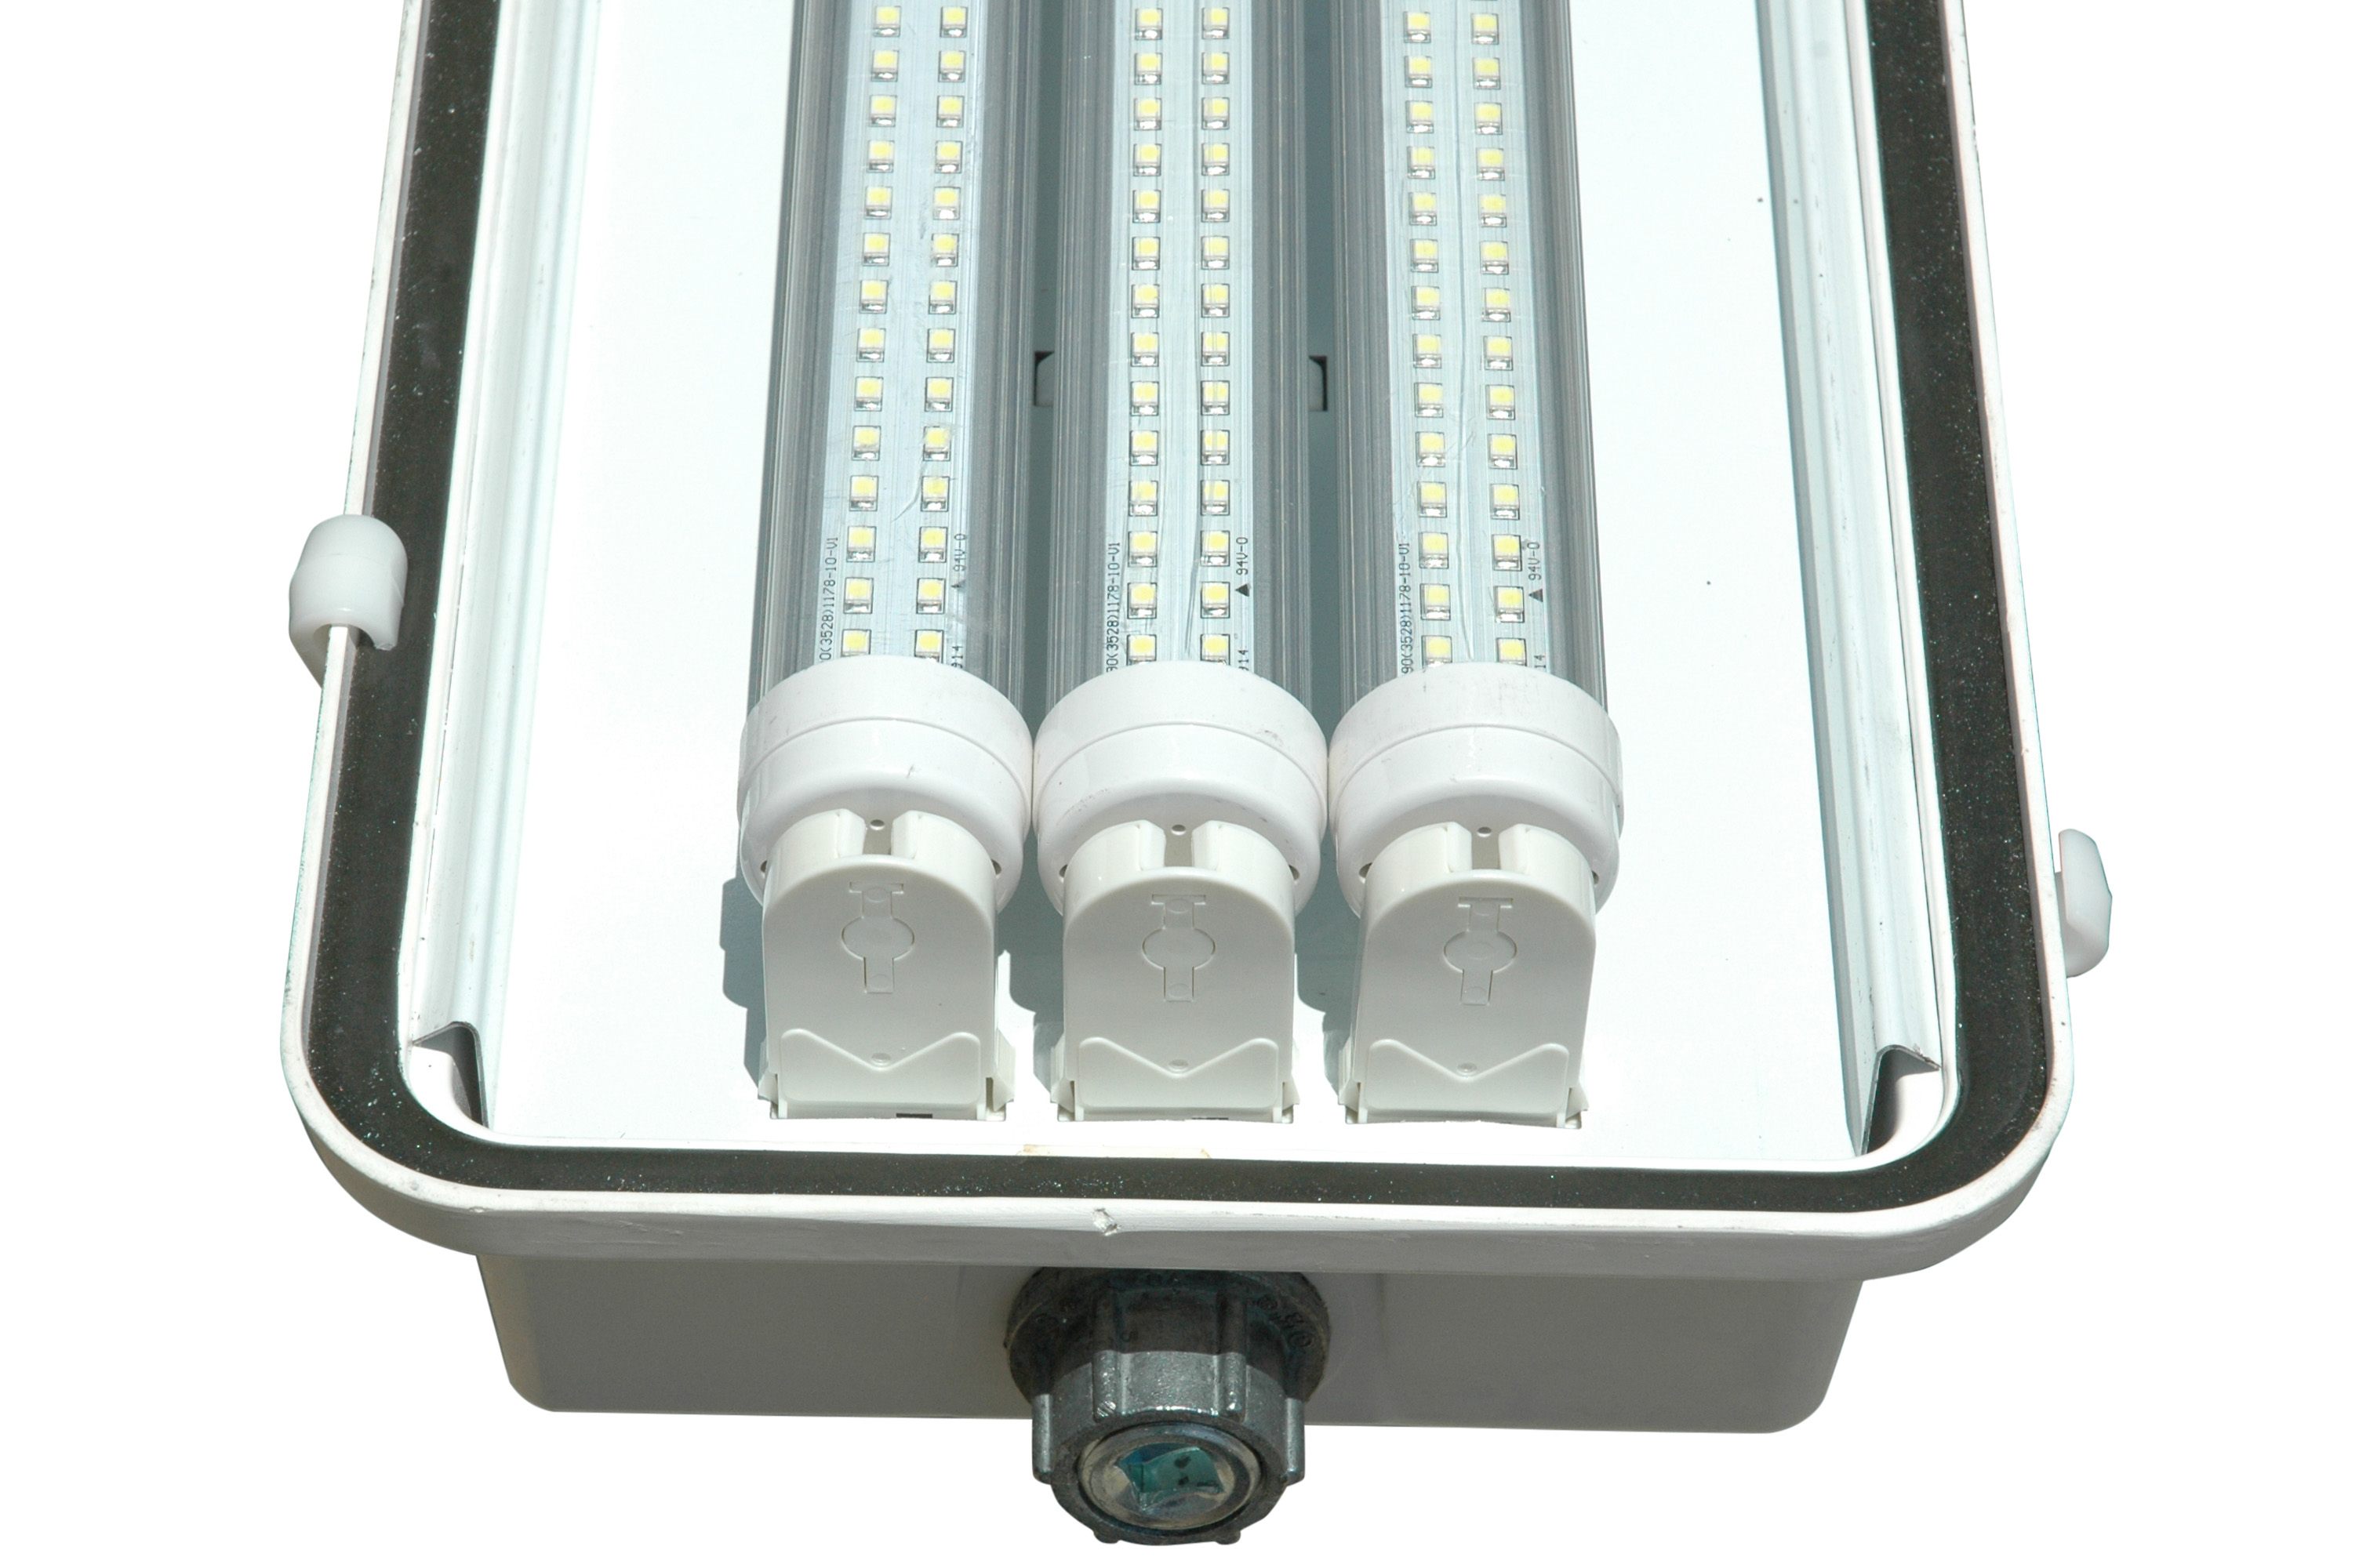 Led Lighting Fixtures : ... led lighting fixture 3 lamp 4 foot hazardous location led lighting